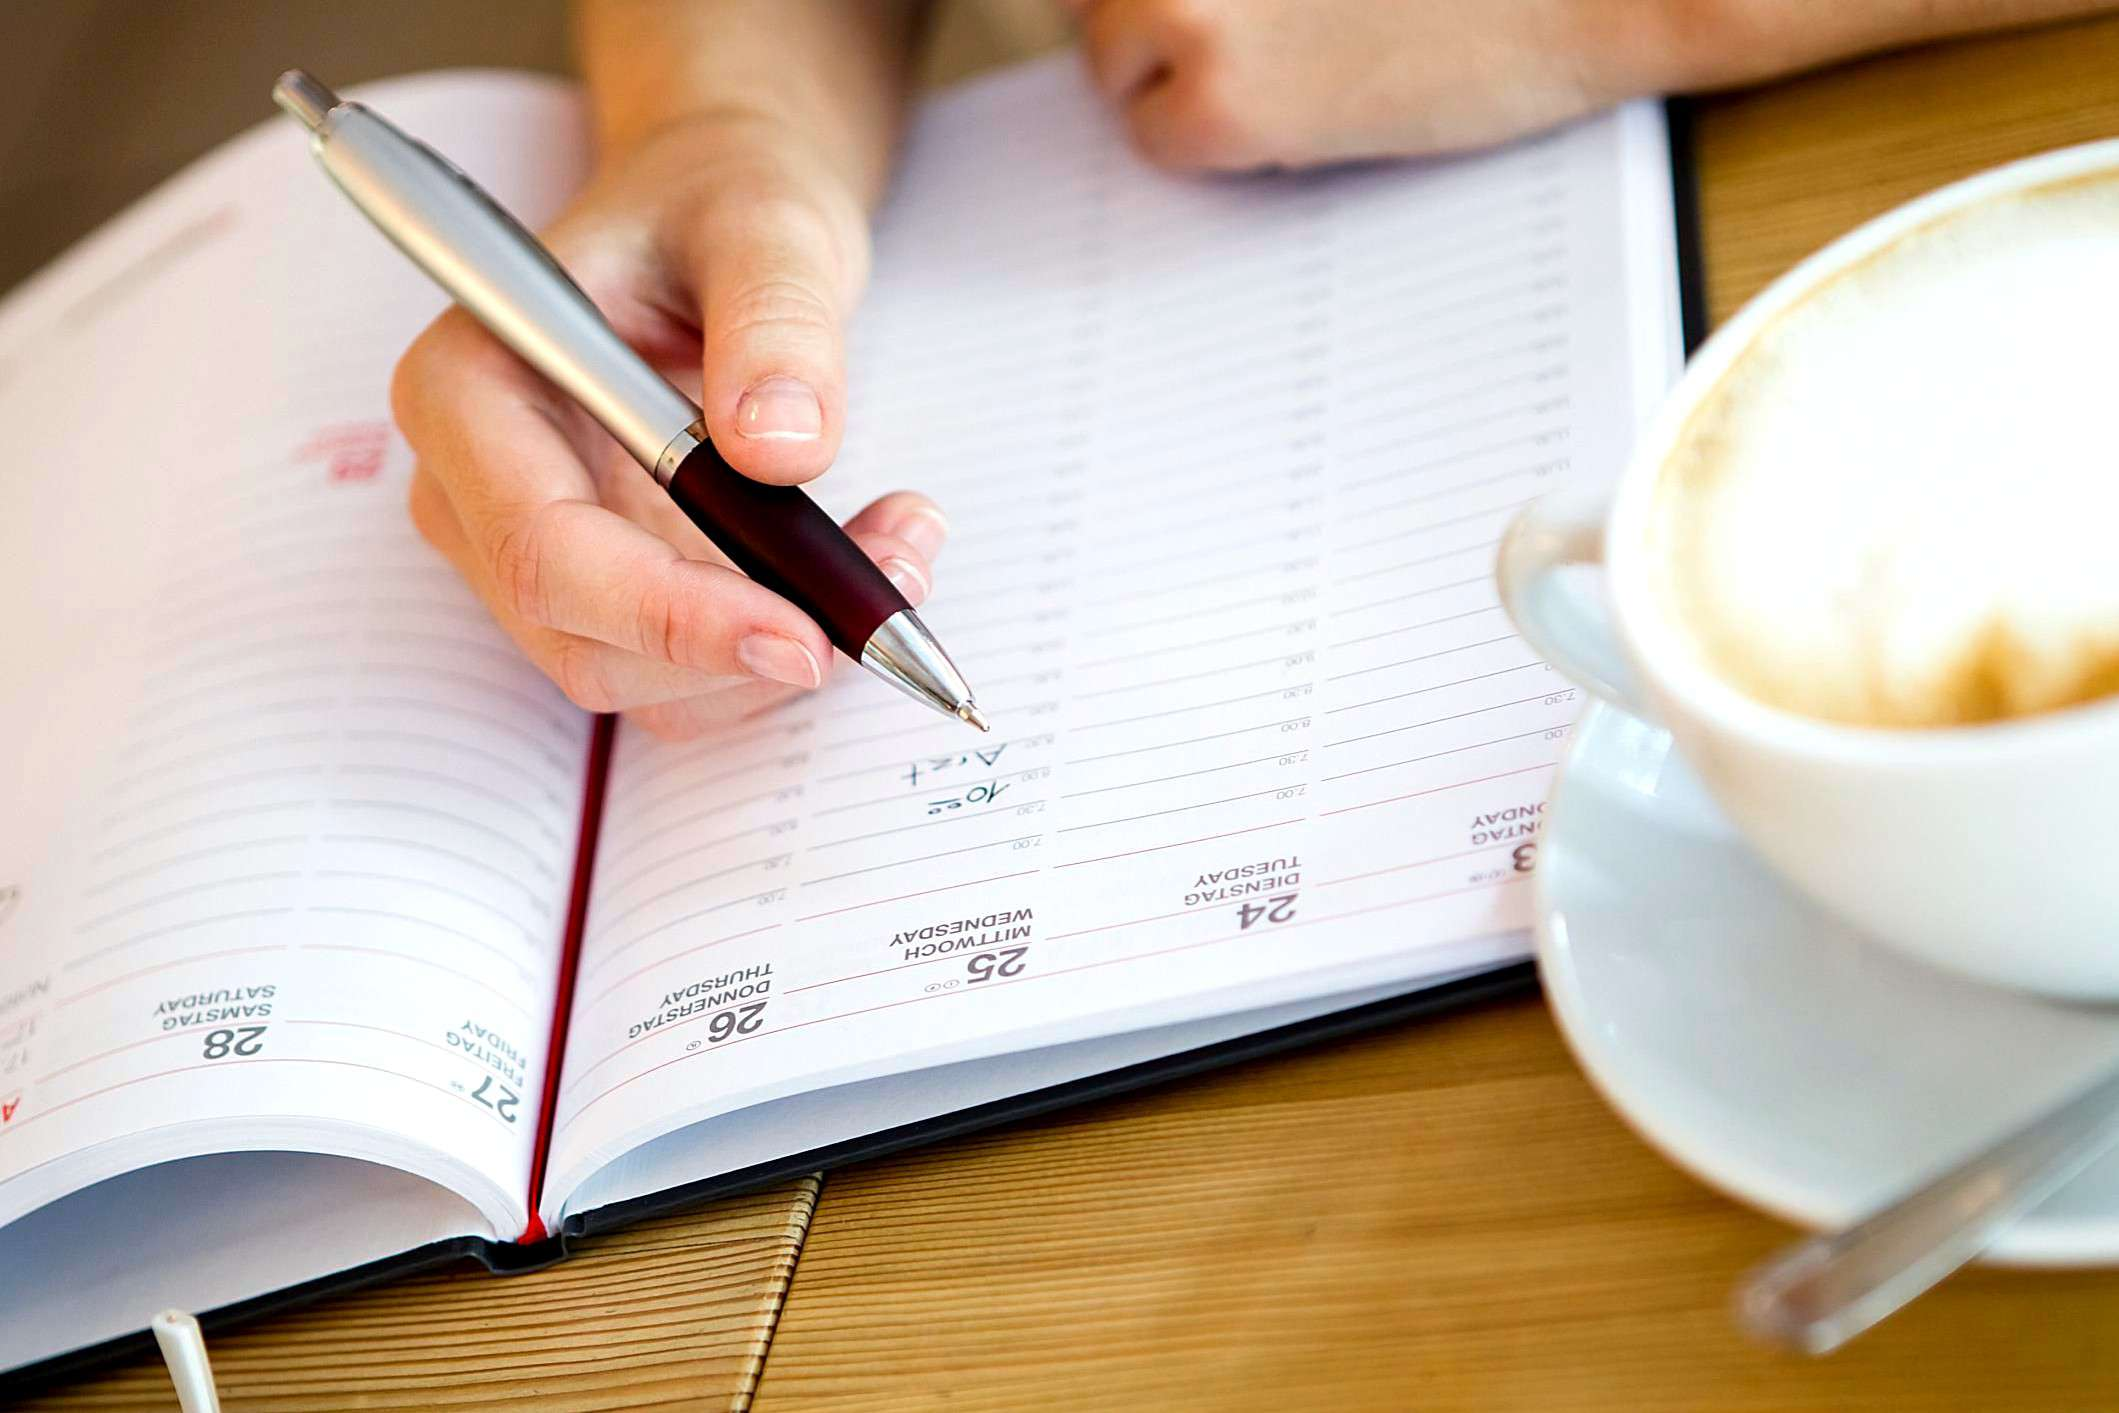 Hands writing in a planner at a local coffee shop